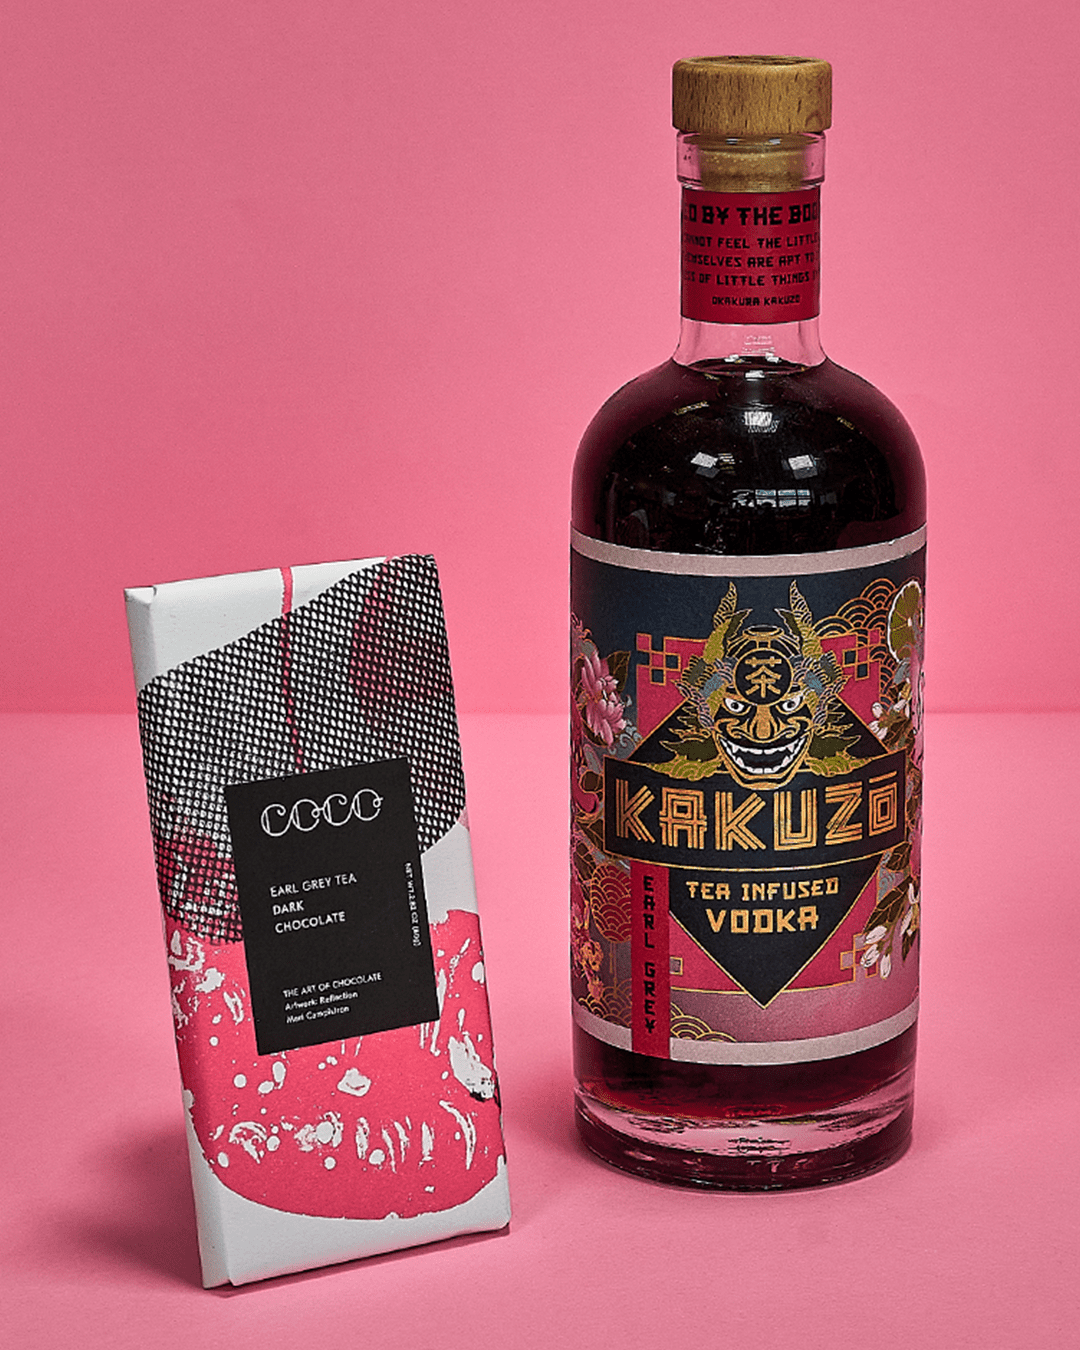 Kakuzo Tea Infused Vodka x COCO Earl Grey Tea Dark Chocolate Bar